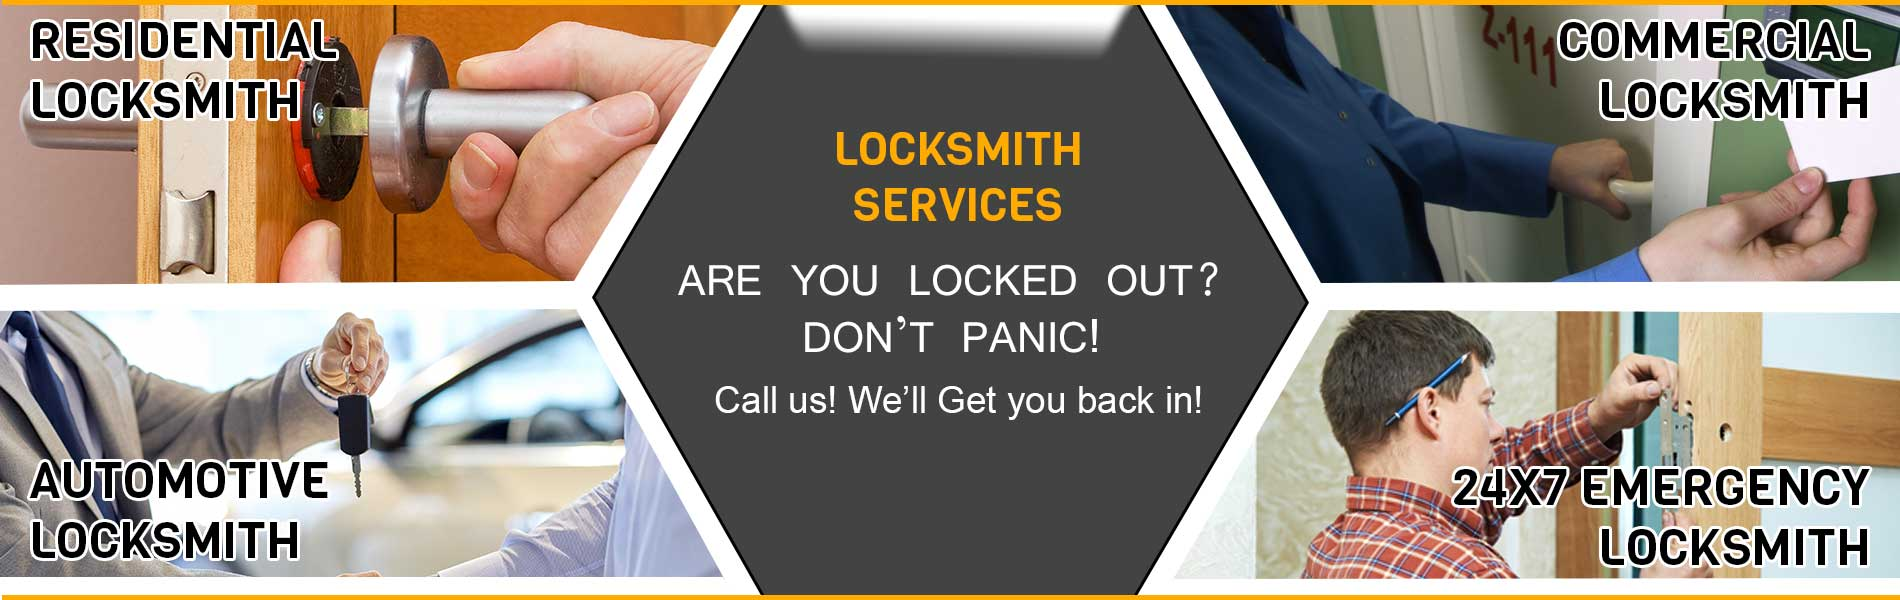 Richardson Lock And Keys Richardson, TX 972-512-6328